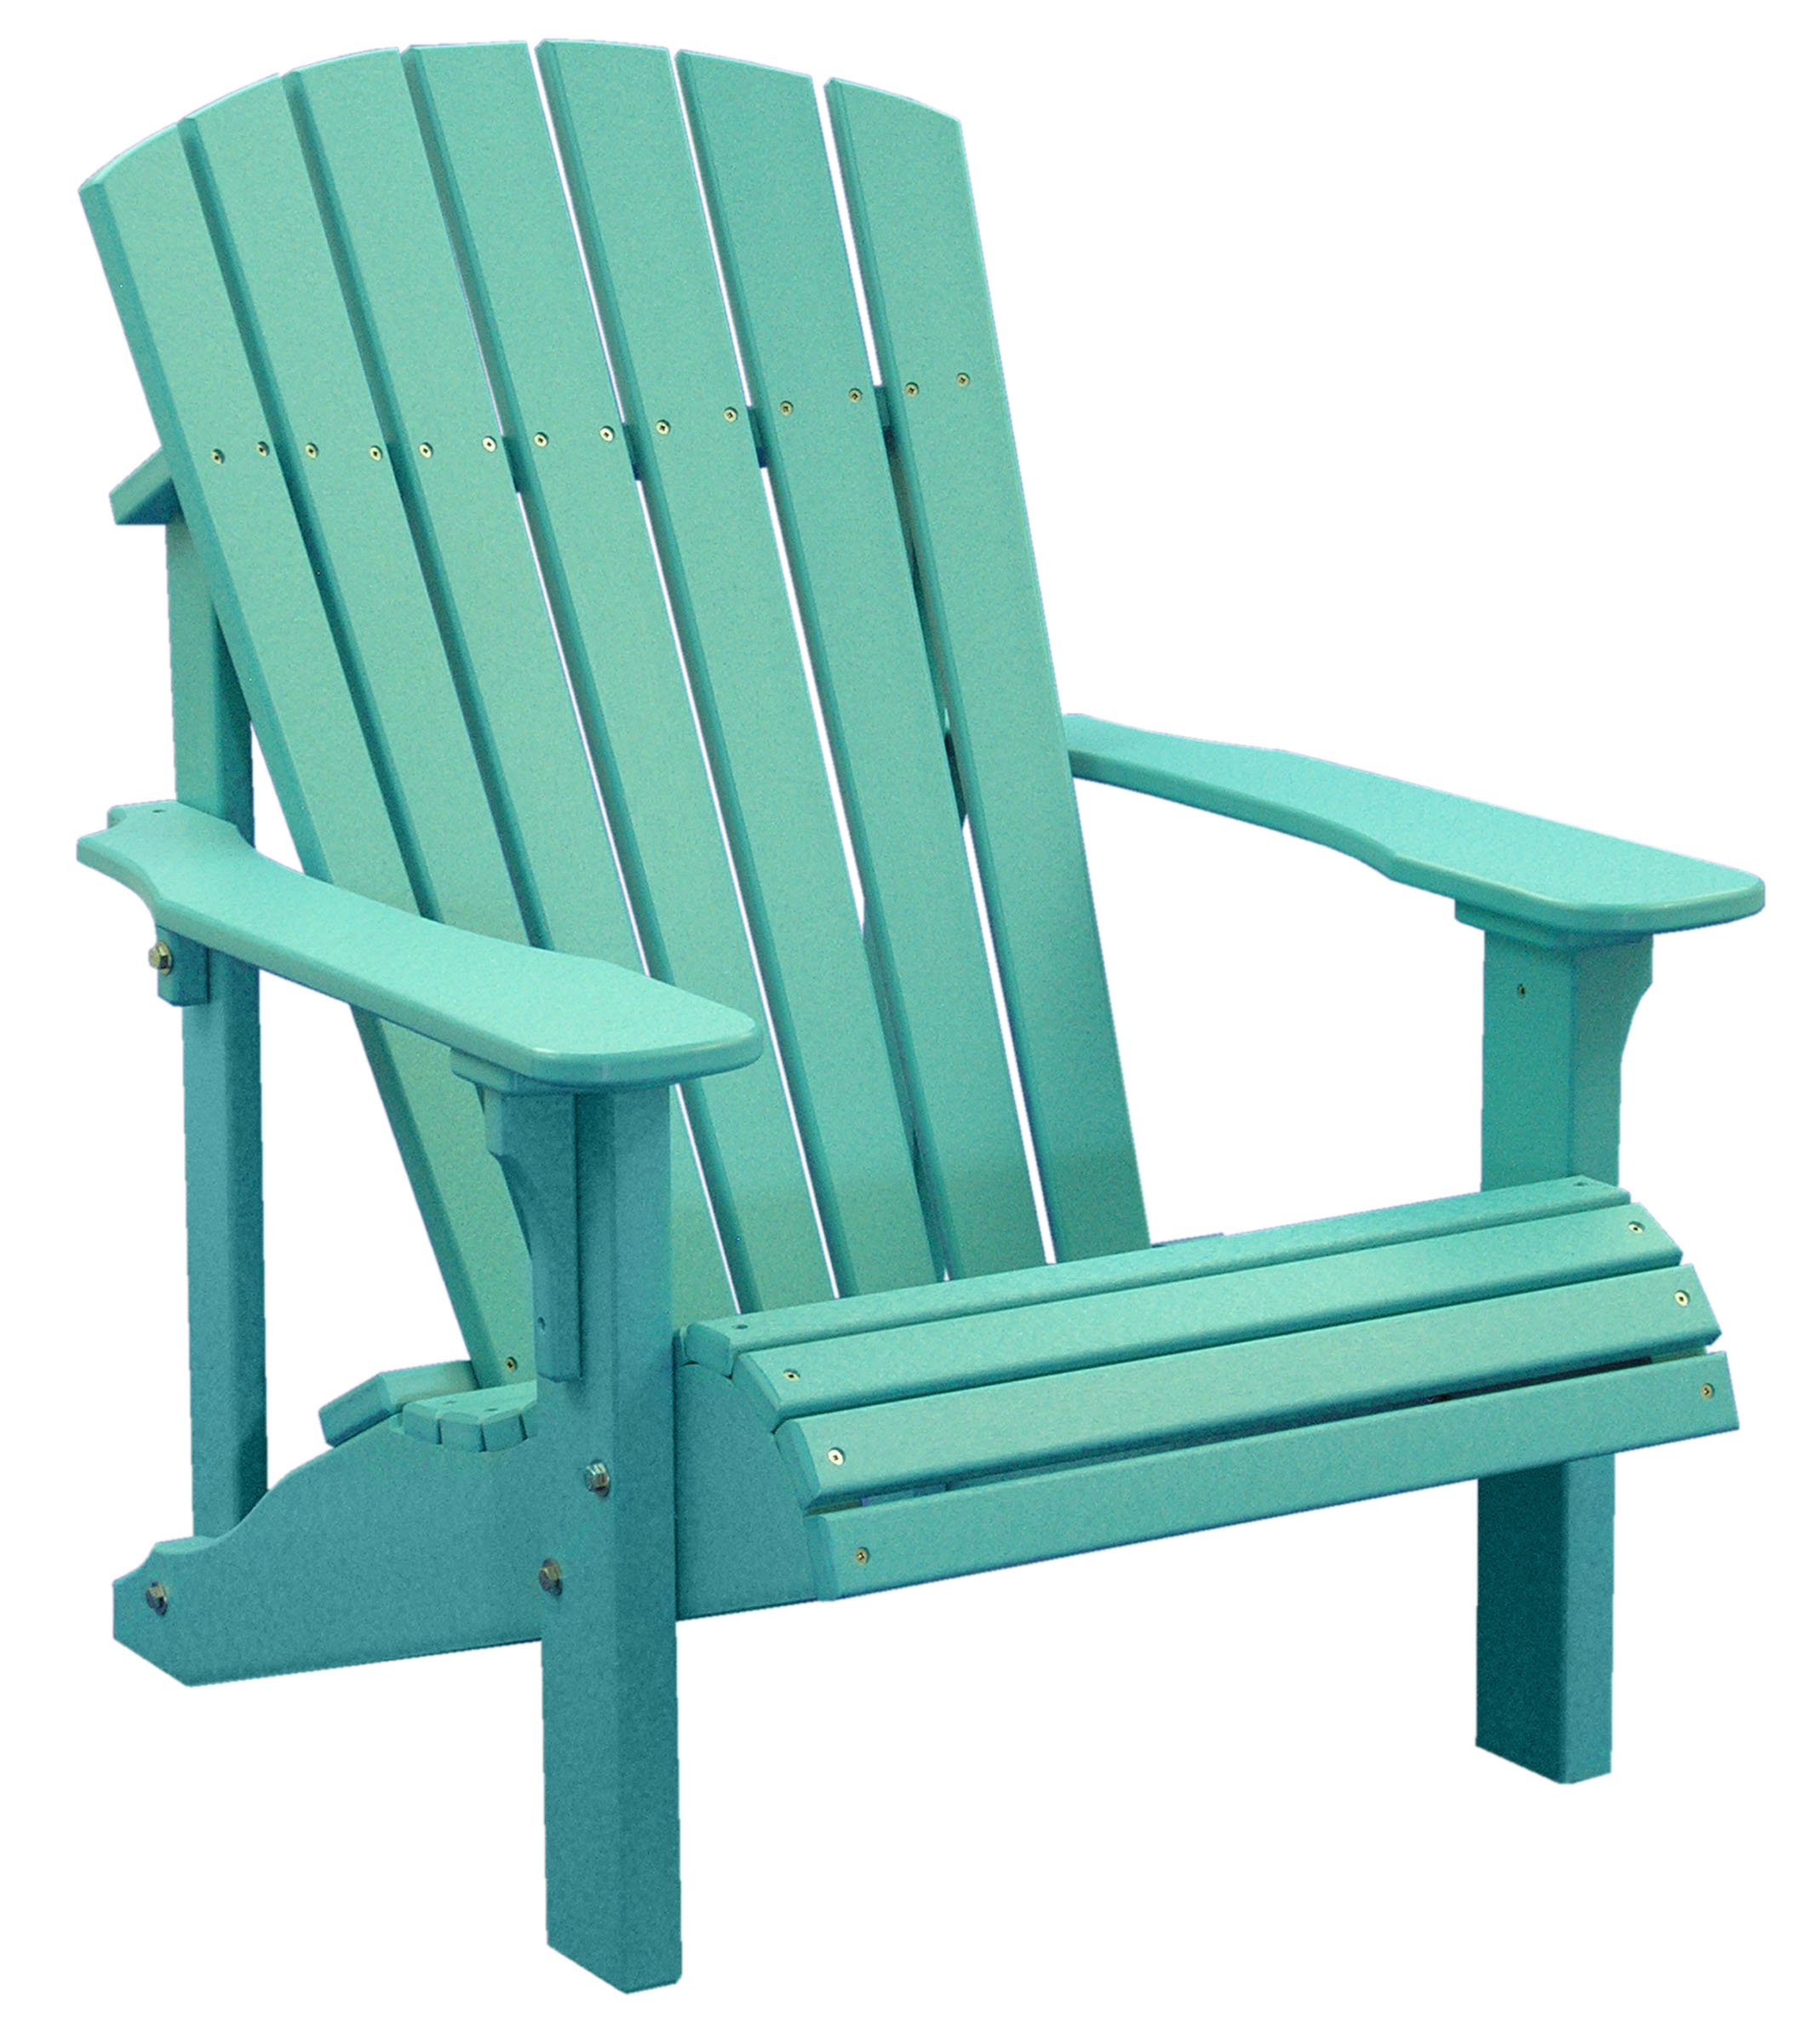 Poly Deluxe Adirondack Chair Outdoor Furniture Luxcraft Swiss Country Lawn Crafts